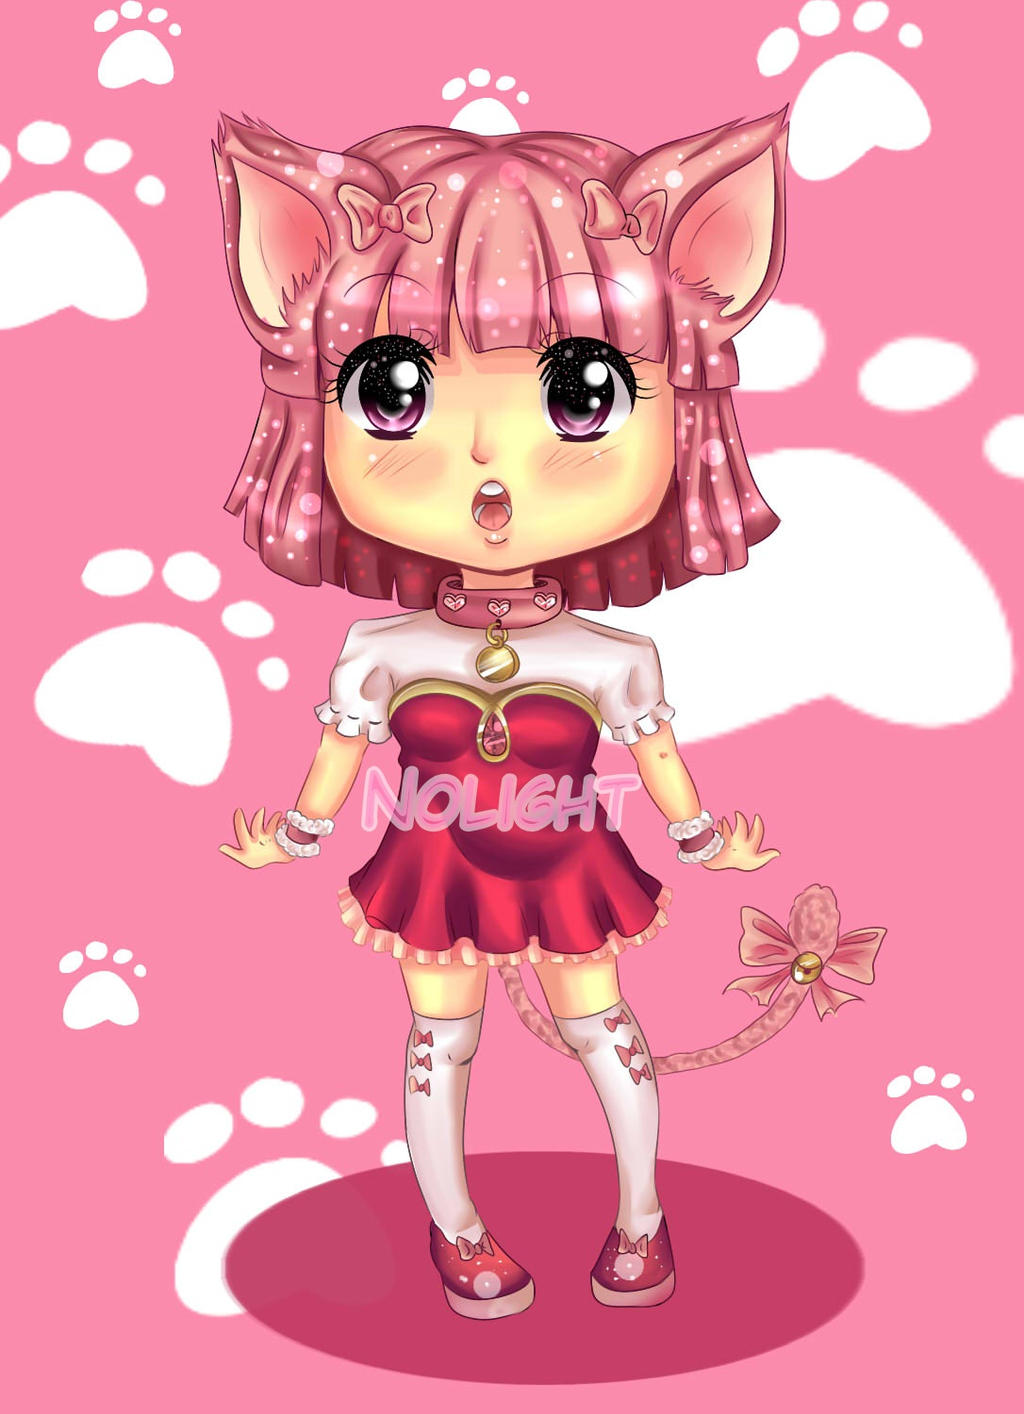 SweetNeko adoptable - Lizzie by NoLightArtist